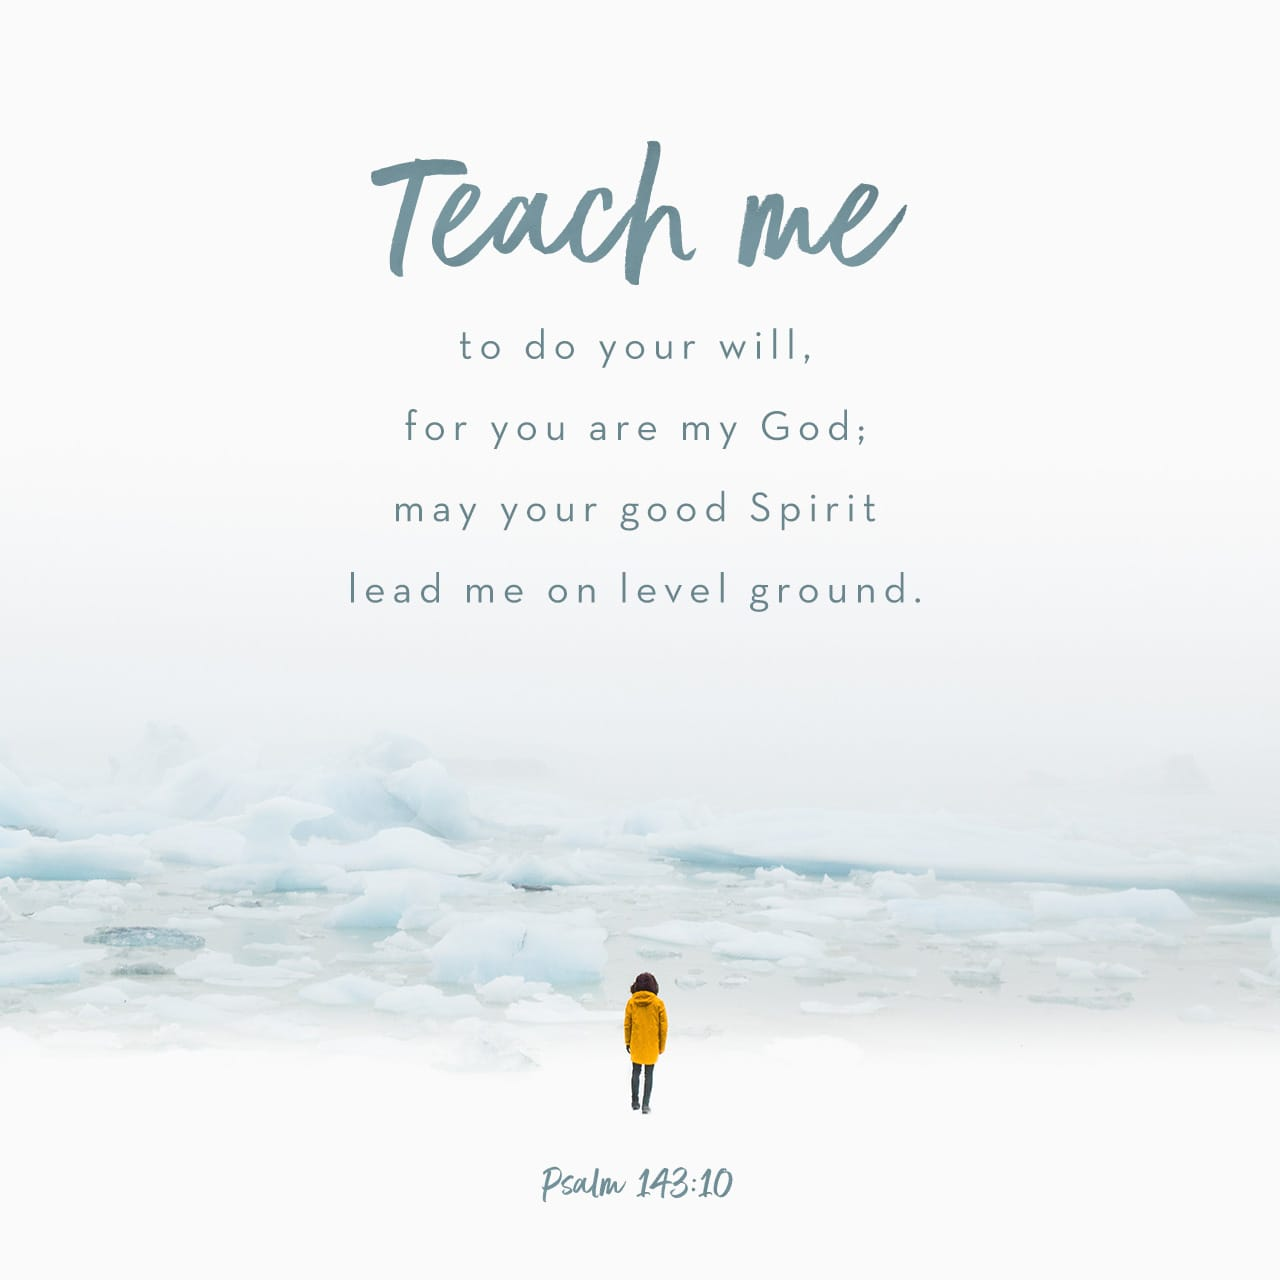 Psalms 143:10 Teach me to do thy will; for thou art my God: thy spirit is good; lead me into the land of uprightness. | King James Version (KJV)